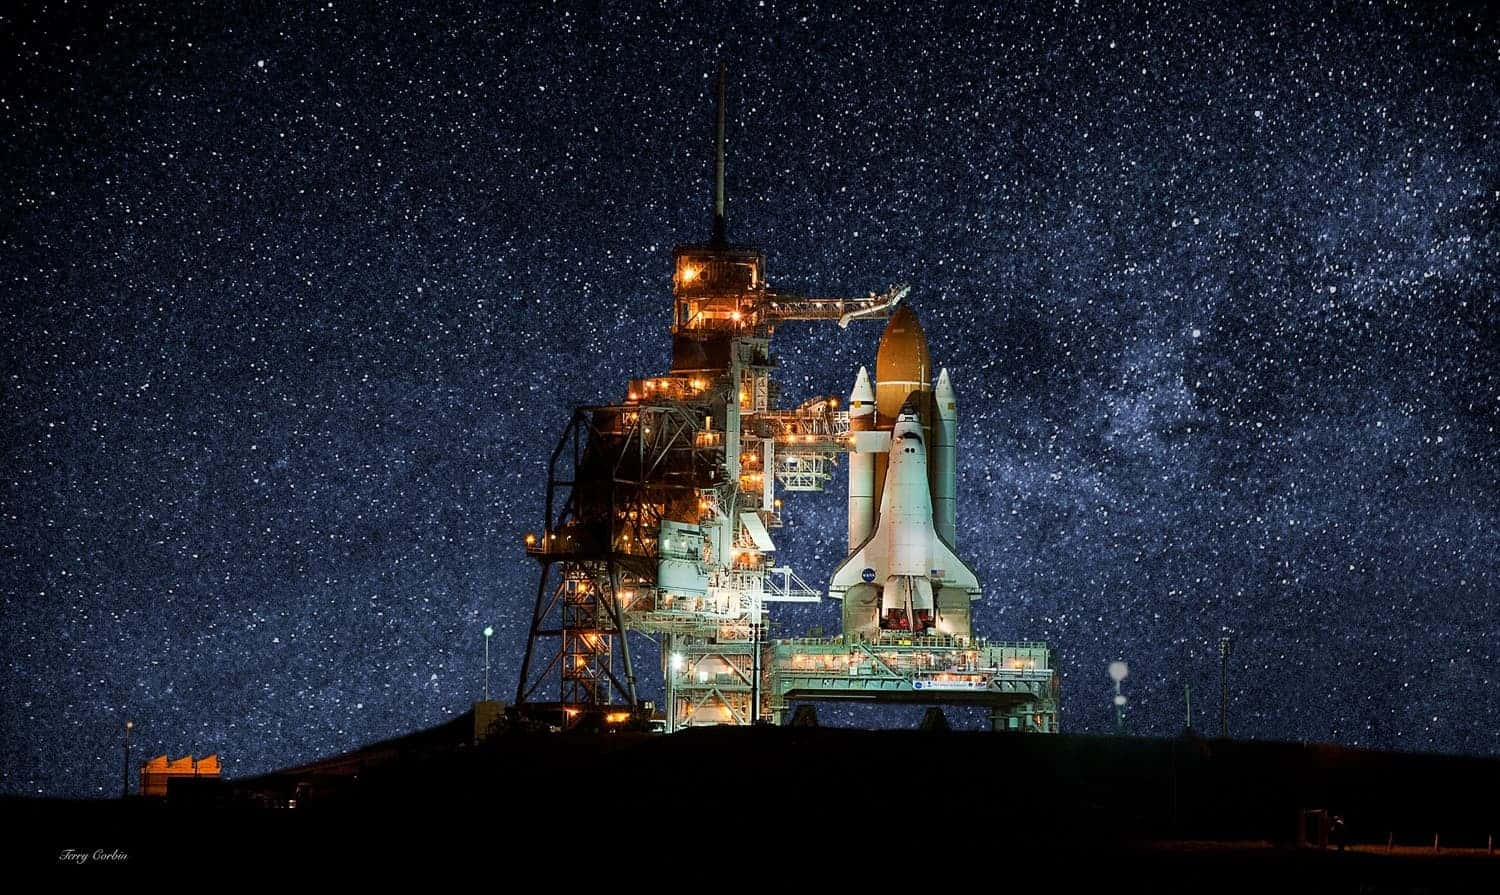 Amazing picture shows Endeavour waiting for its last mission